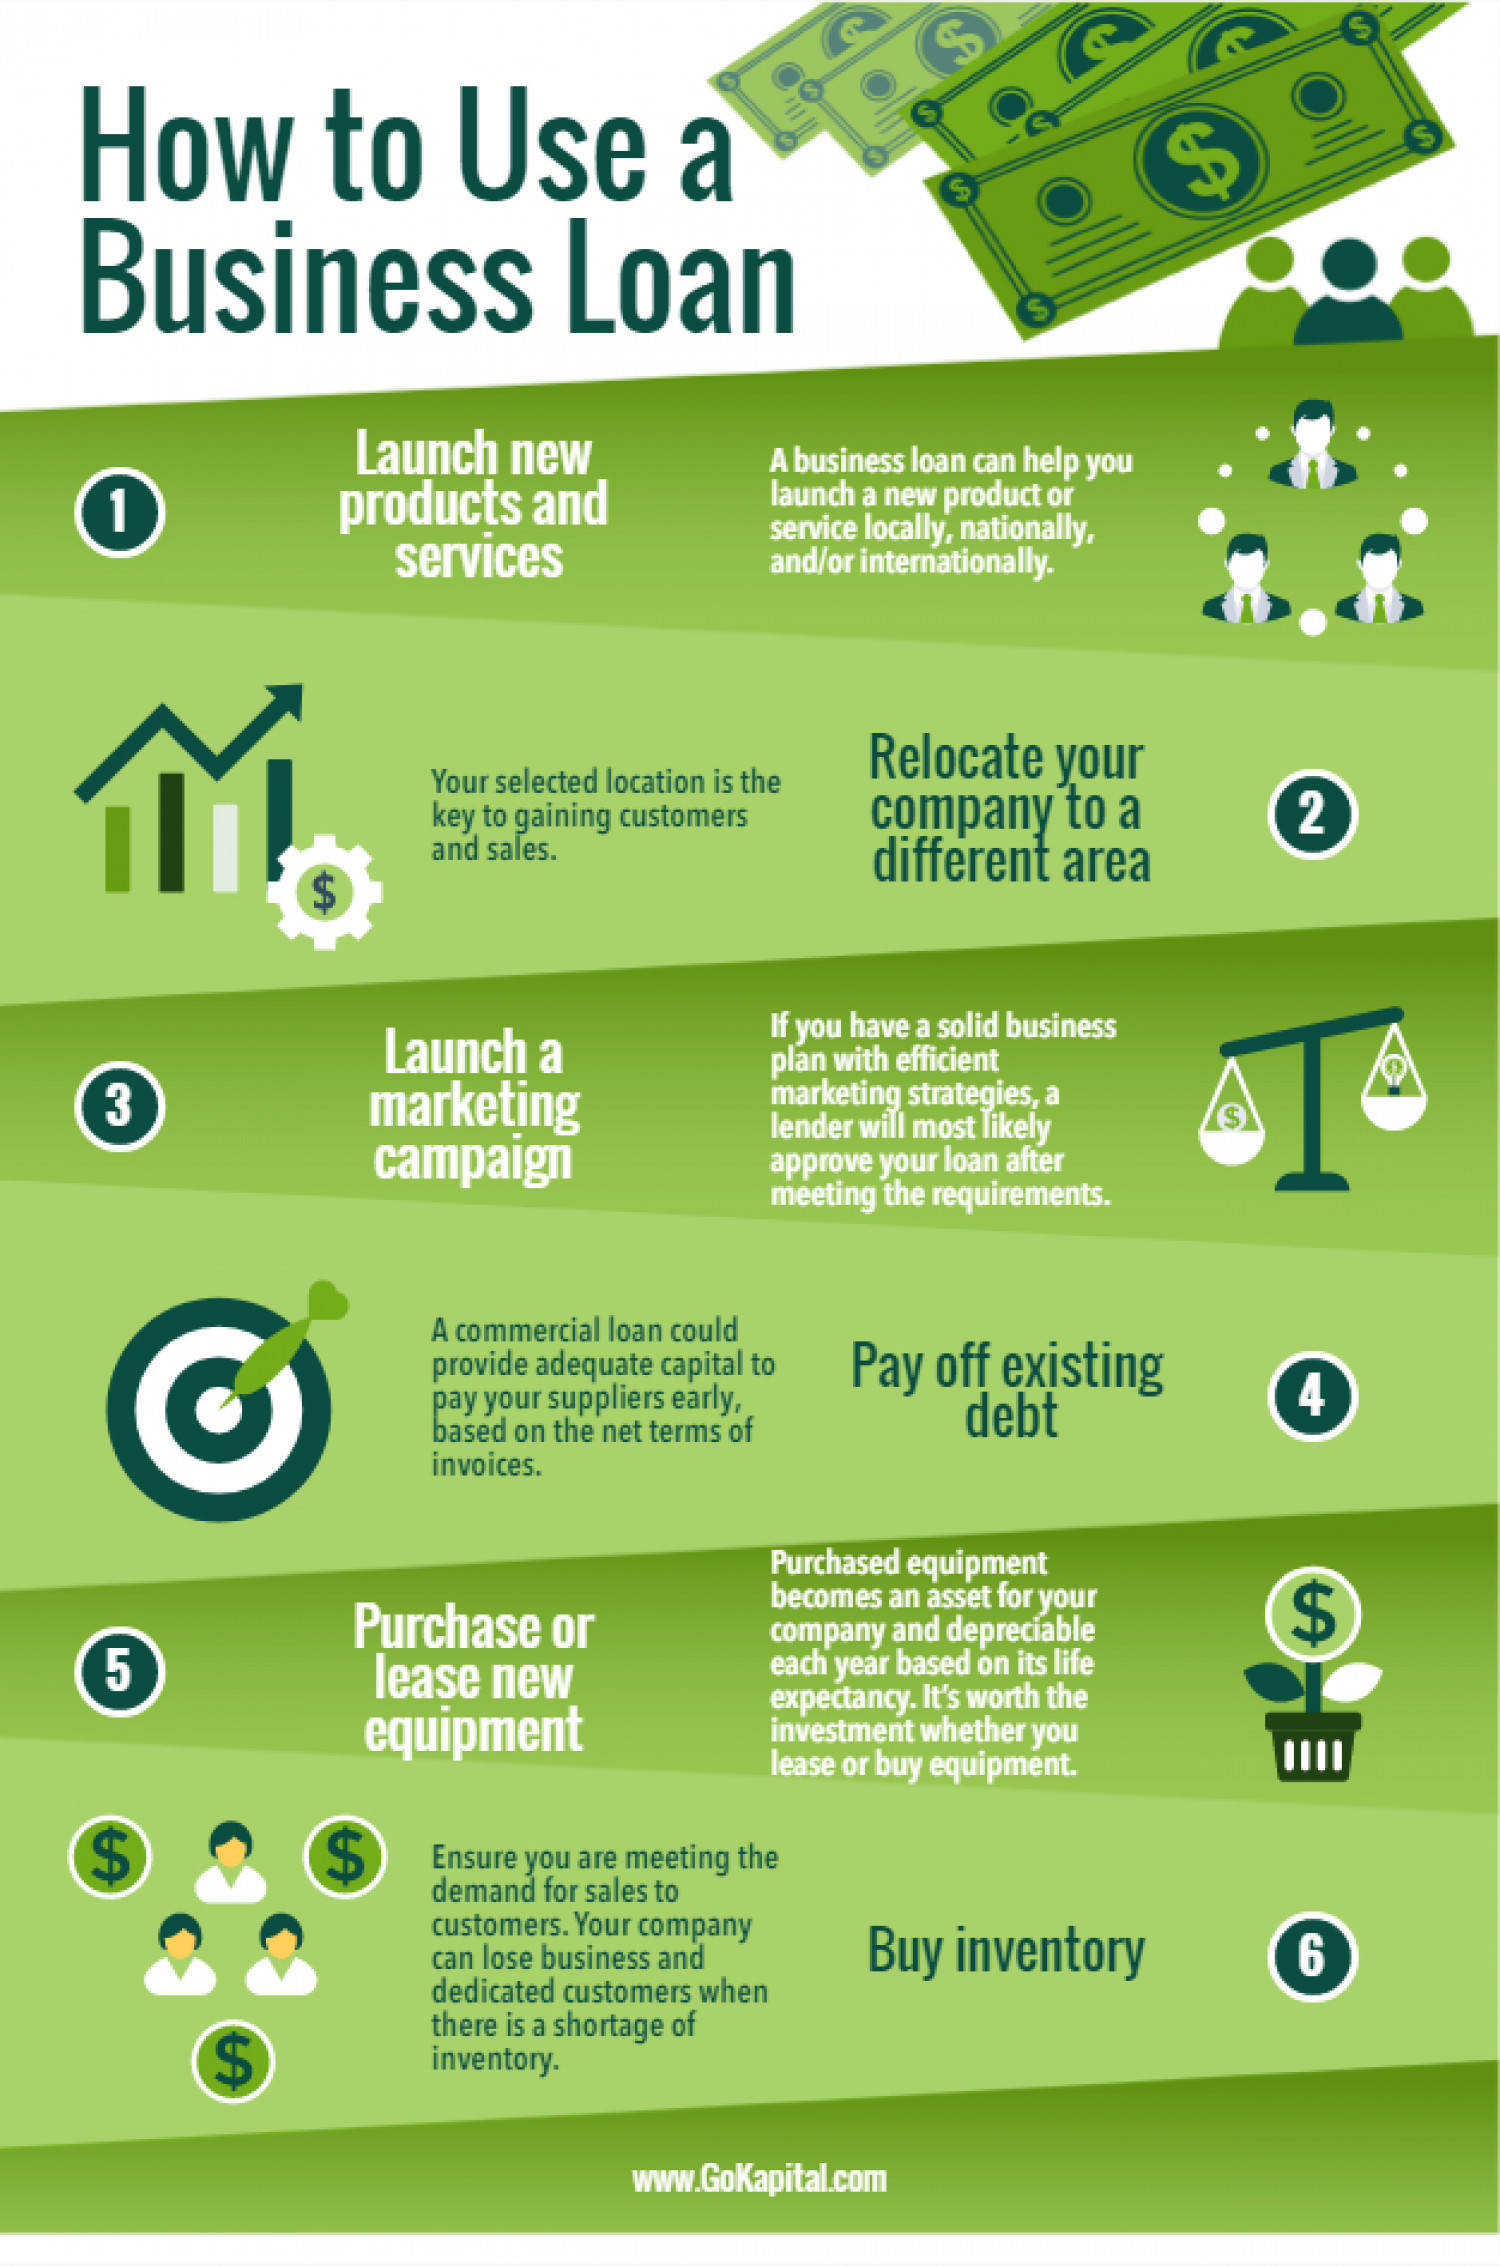 How to Use a Business Loan to Grow your Company Infographic